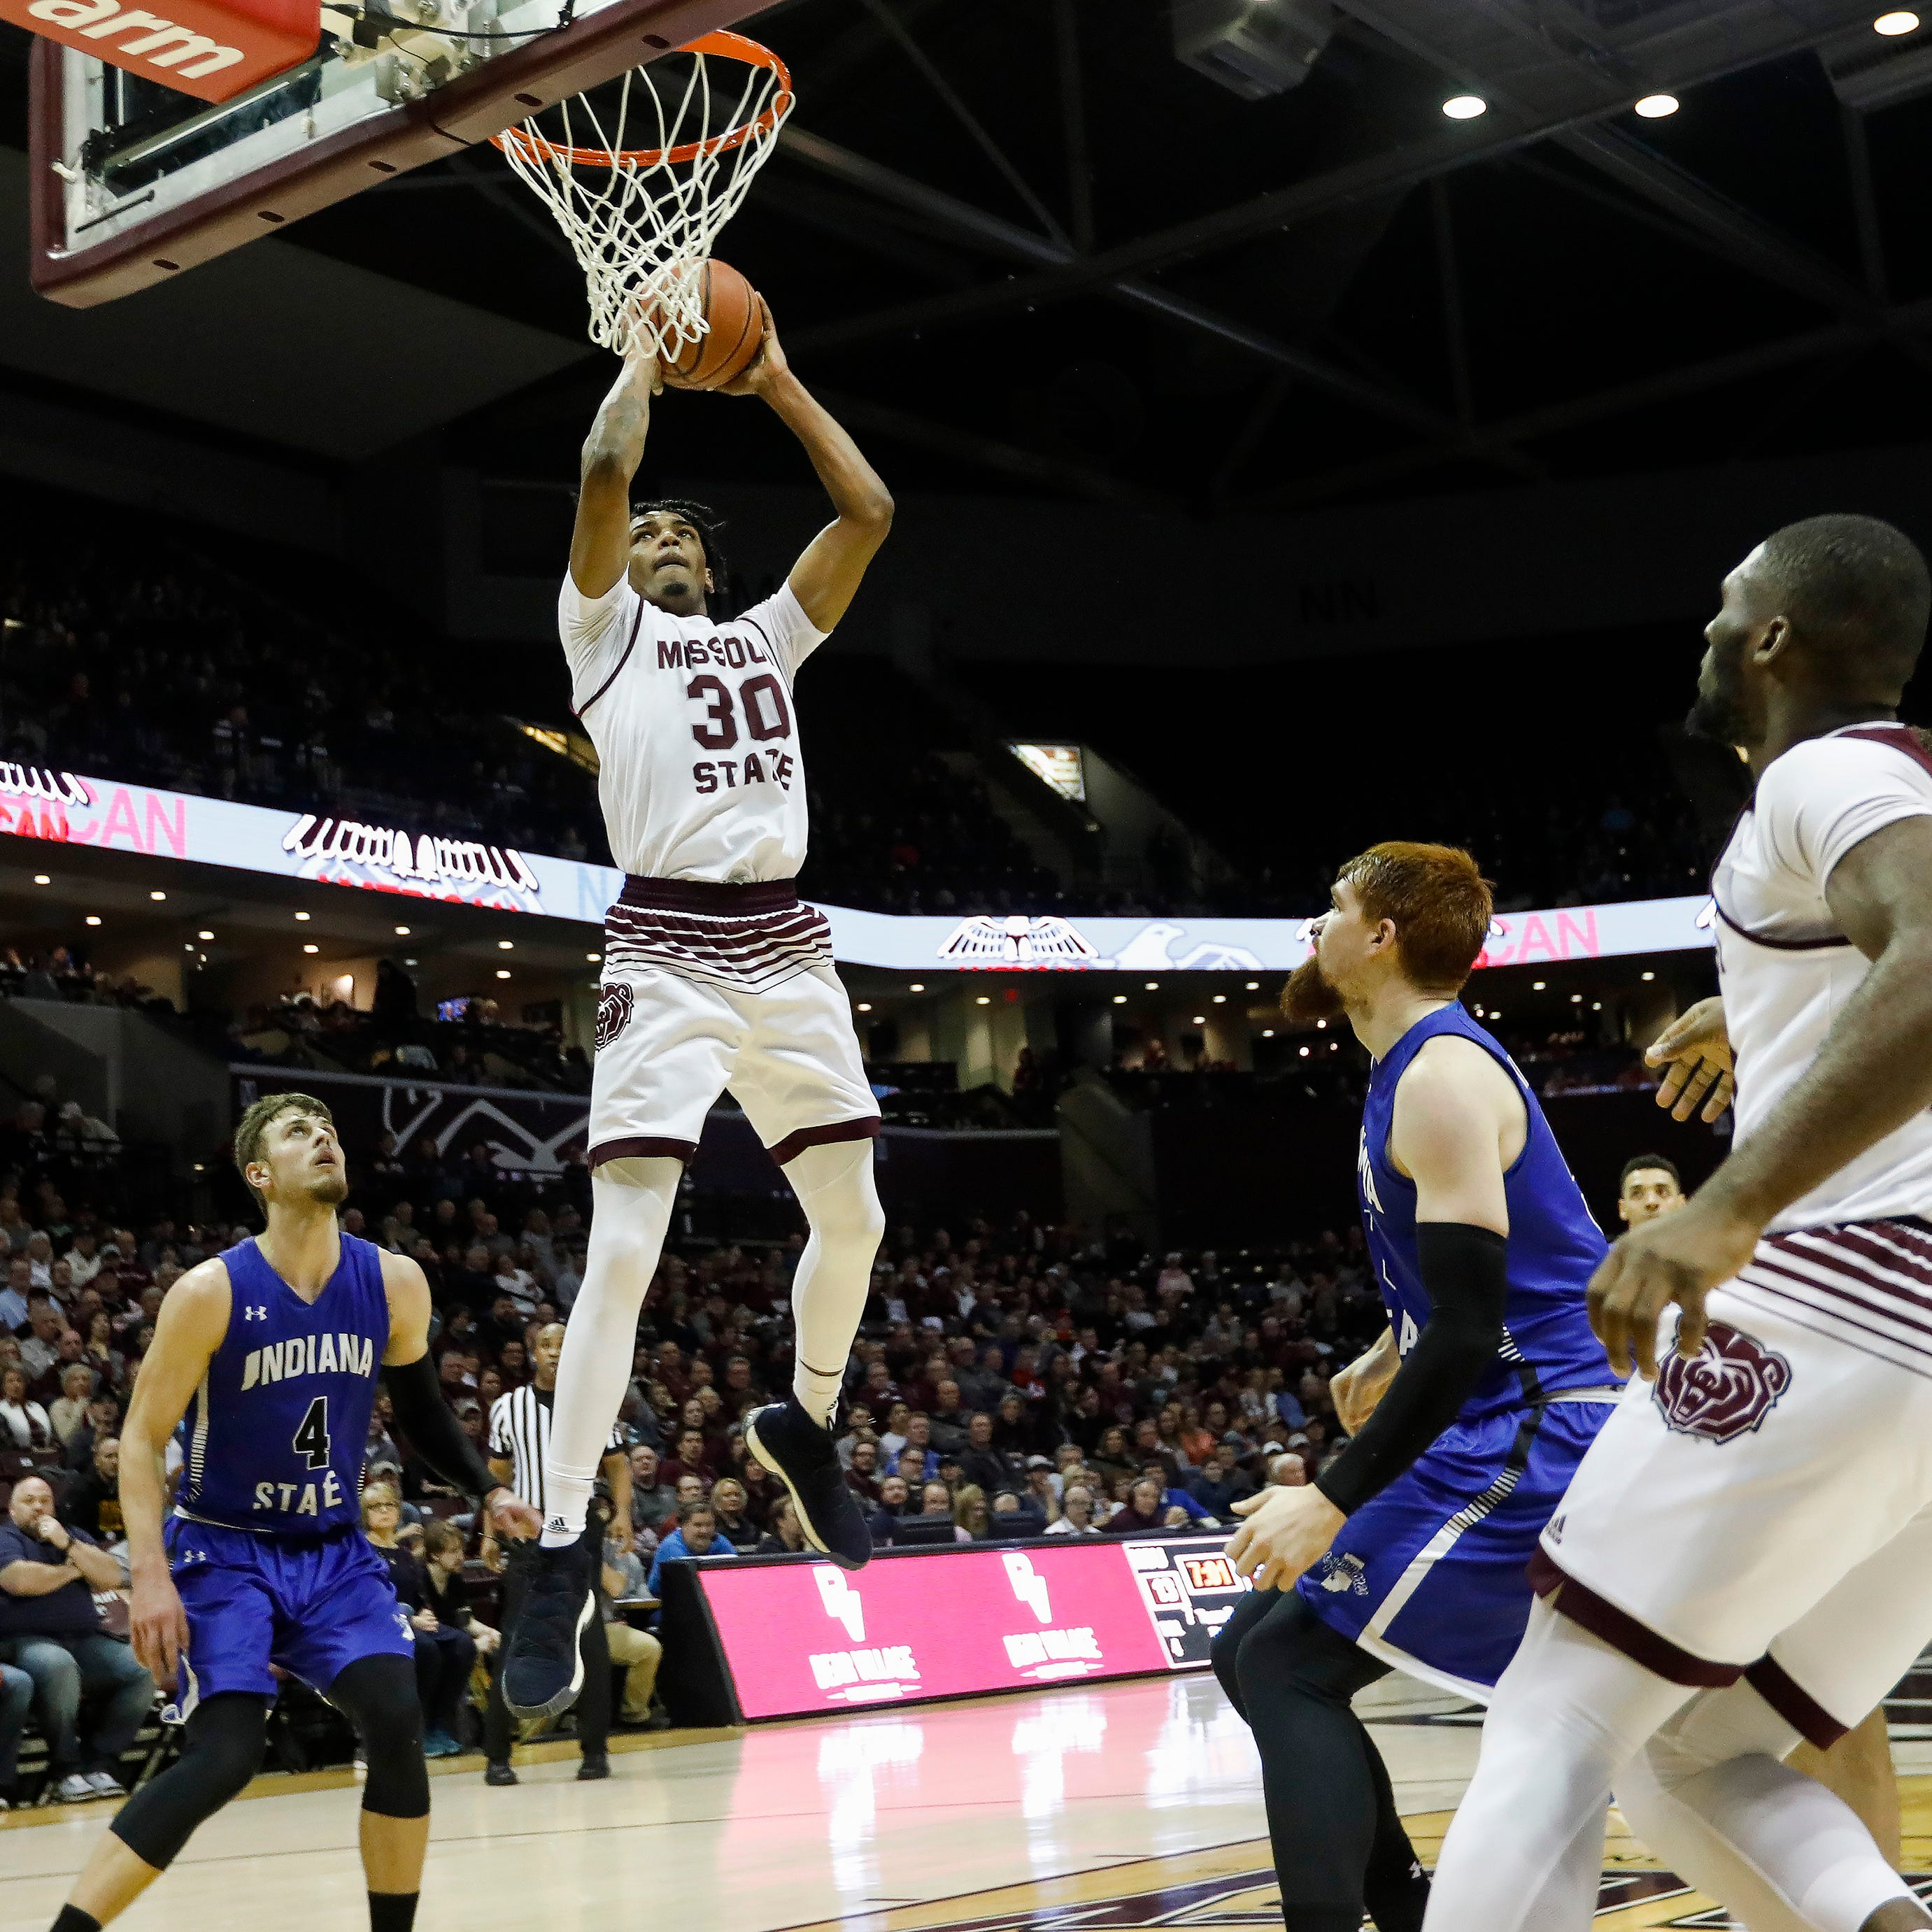 Missouri State stays in Valley title race with bounce-back win over Indiana State